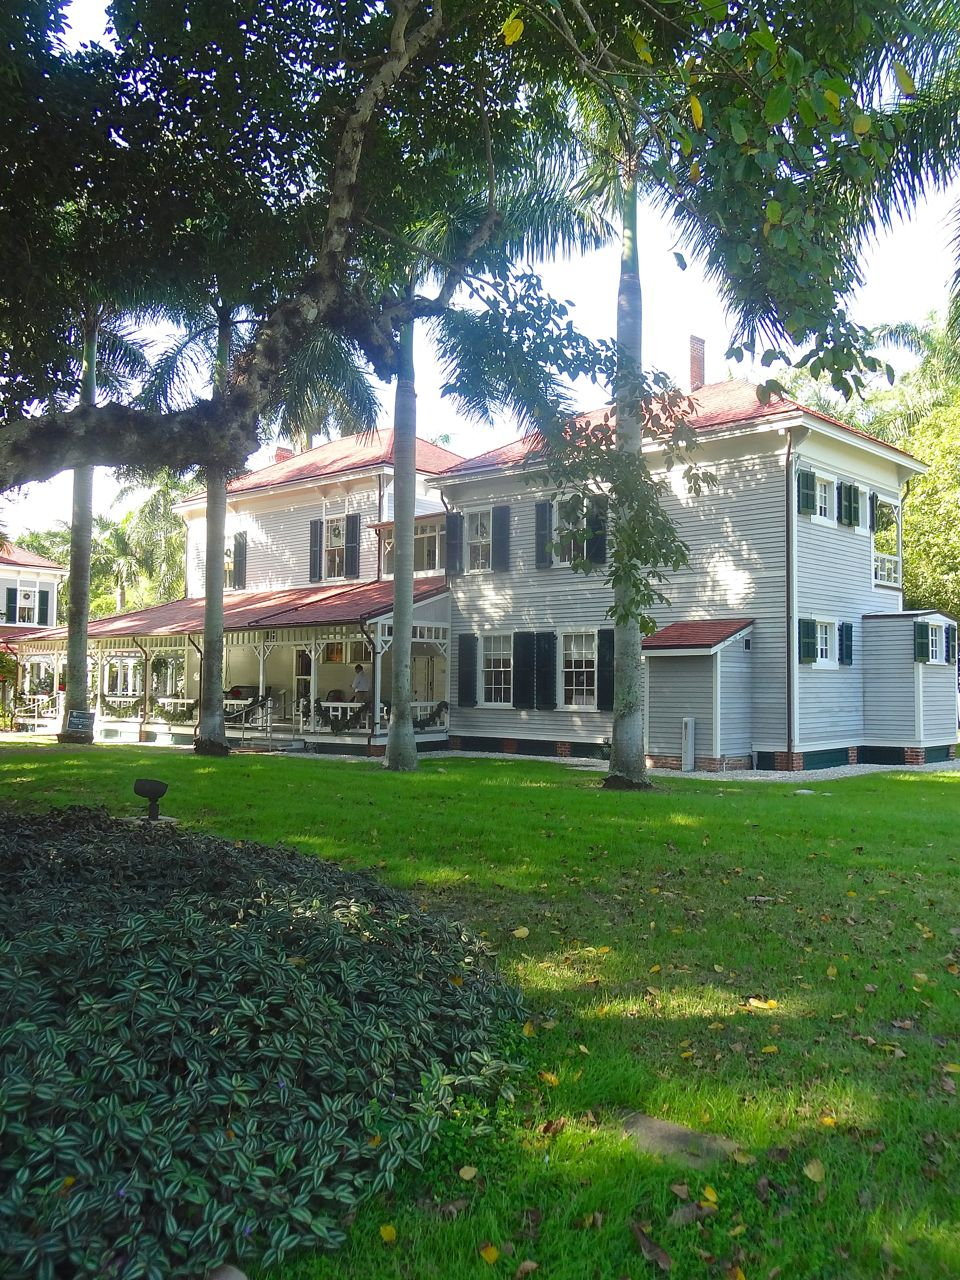 Scrumpdillyicious: The Edison and Ford Winter Estates in Fort Myers